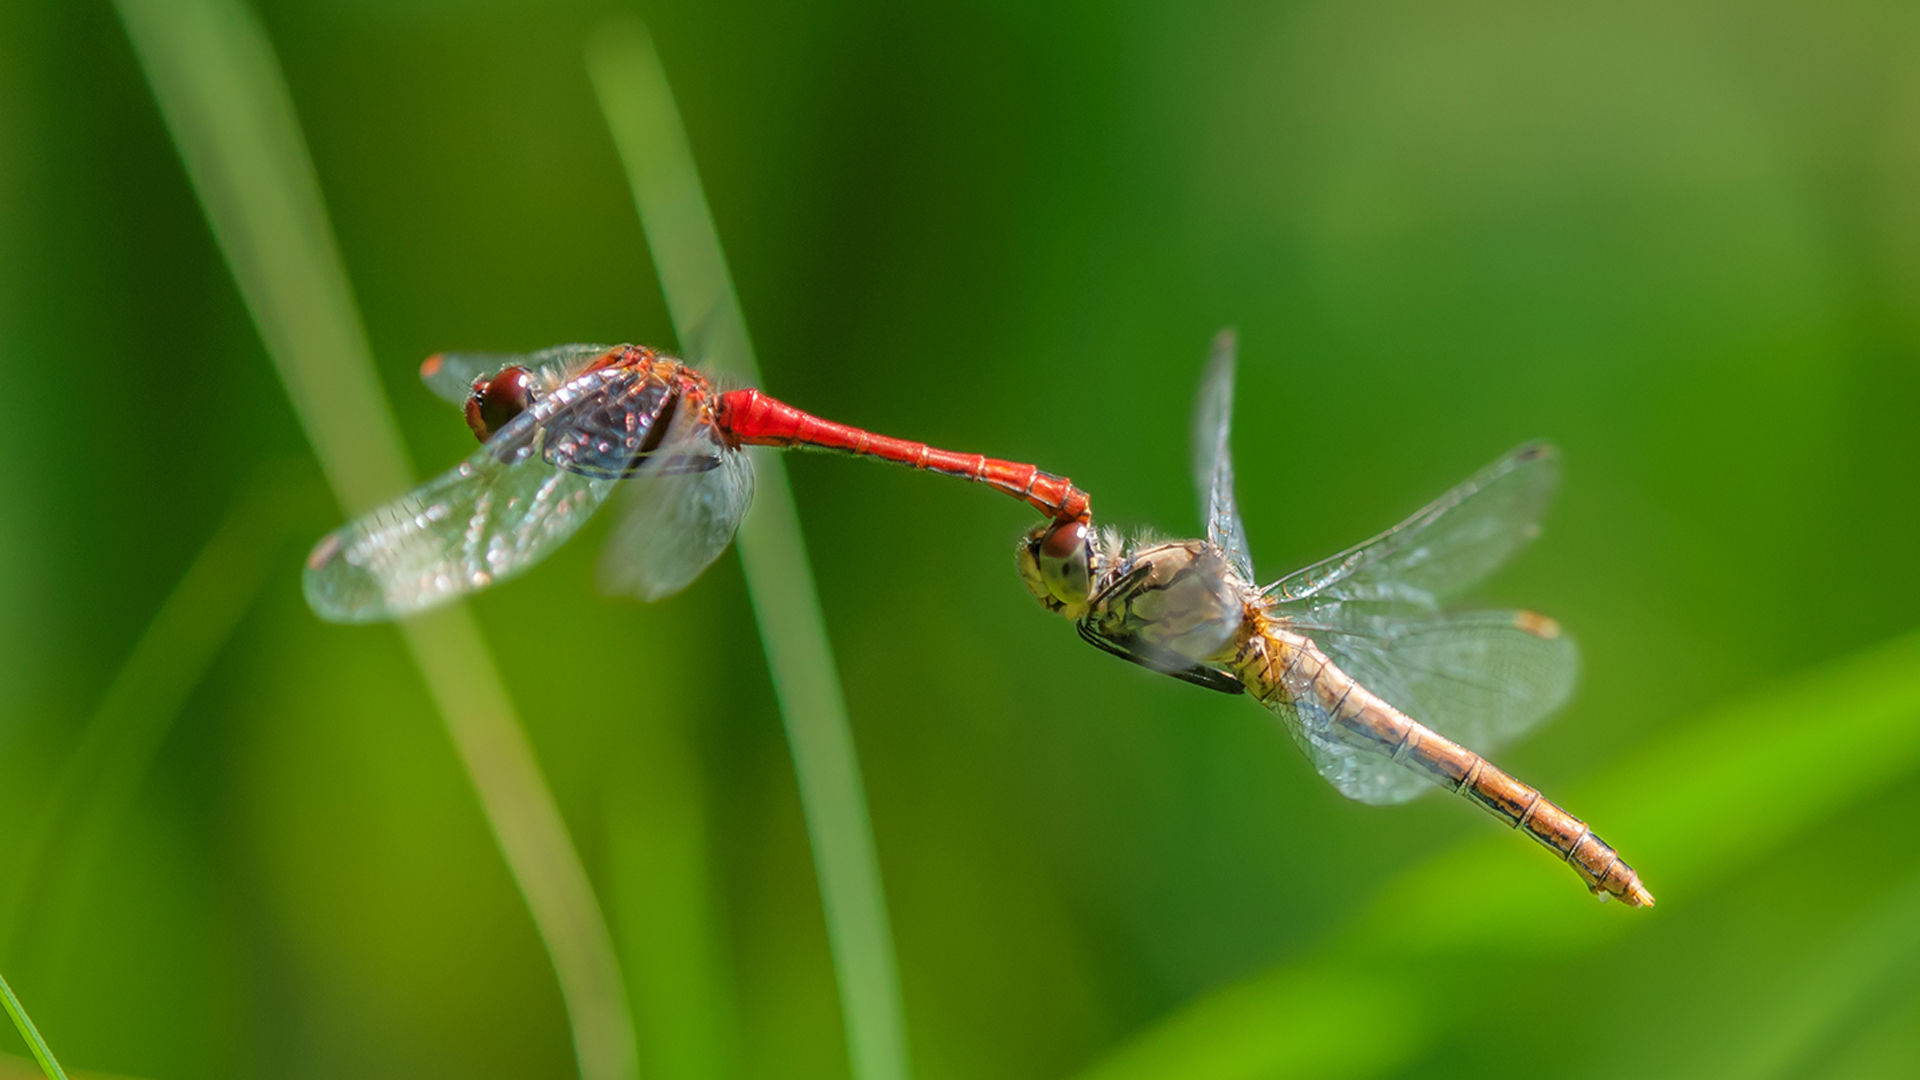 Dragonfly Wallpapers, Pictures, Images